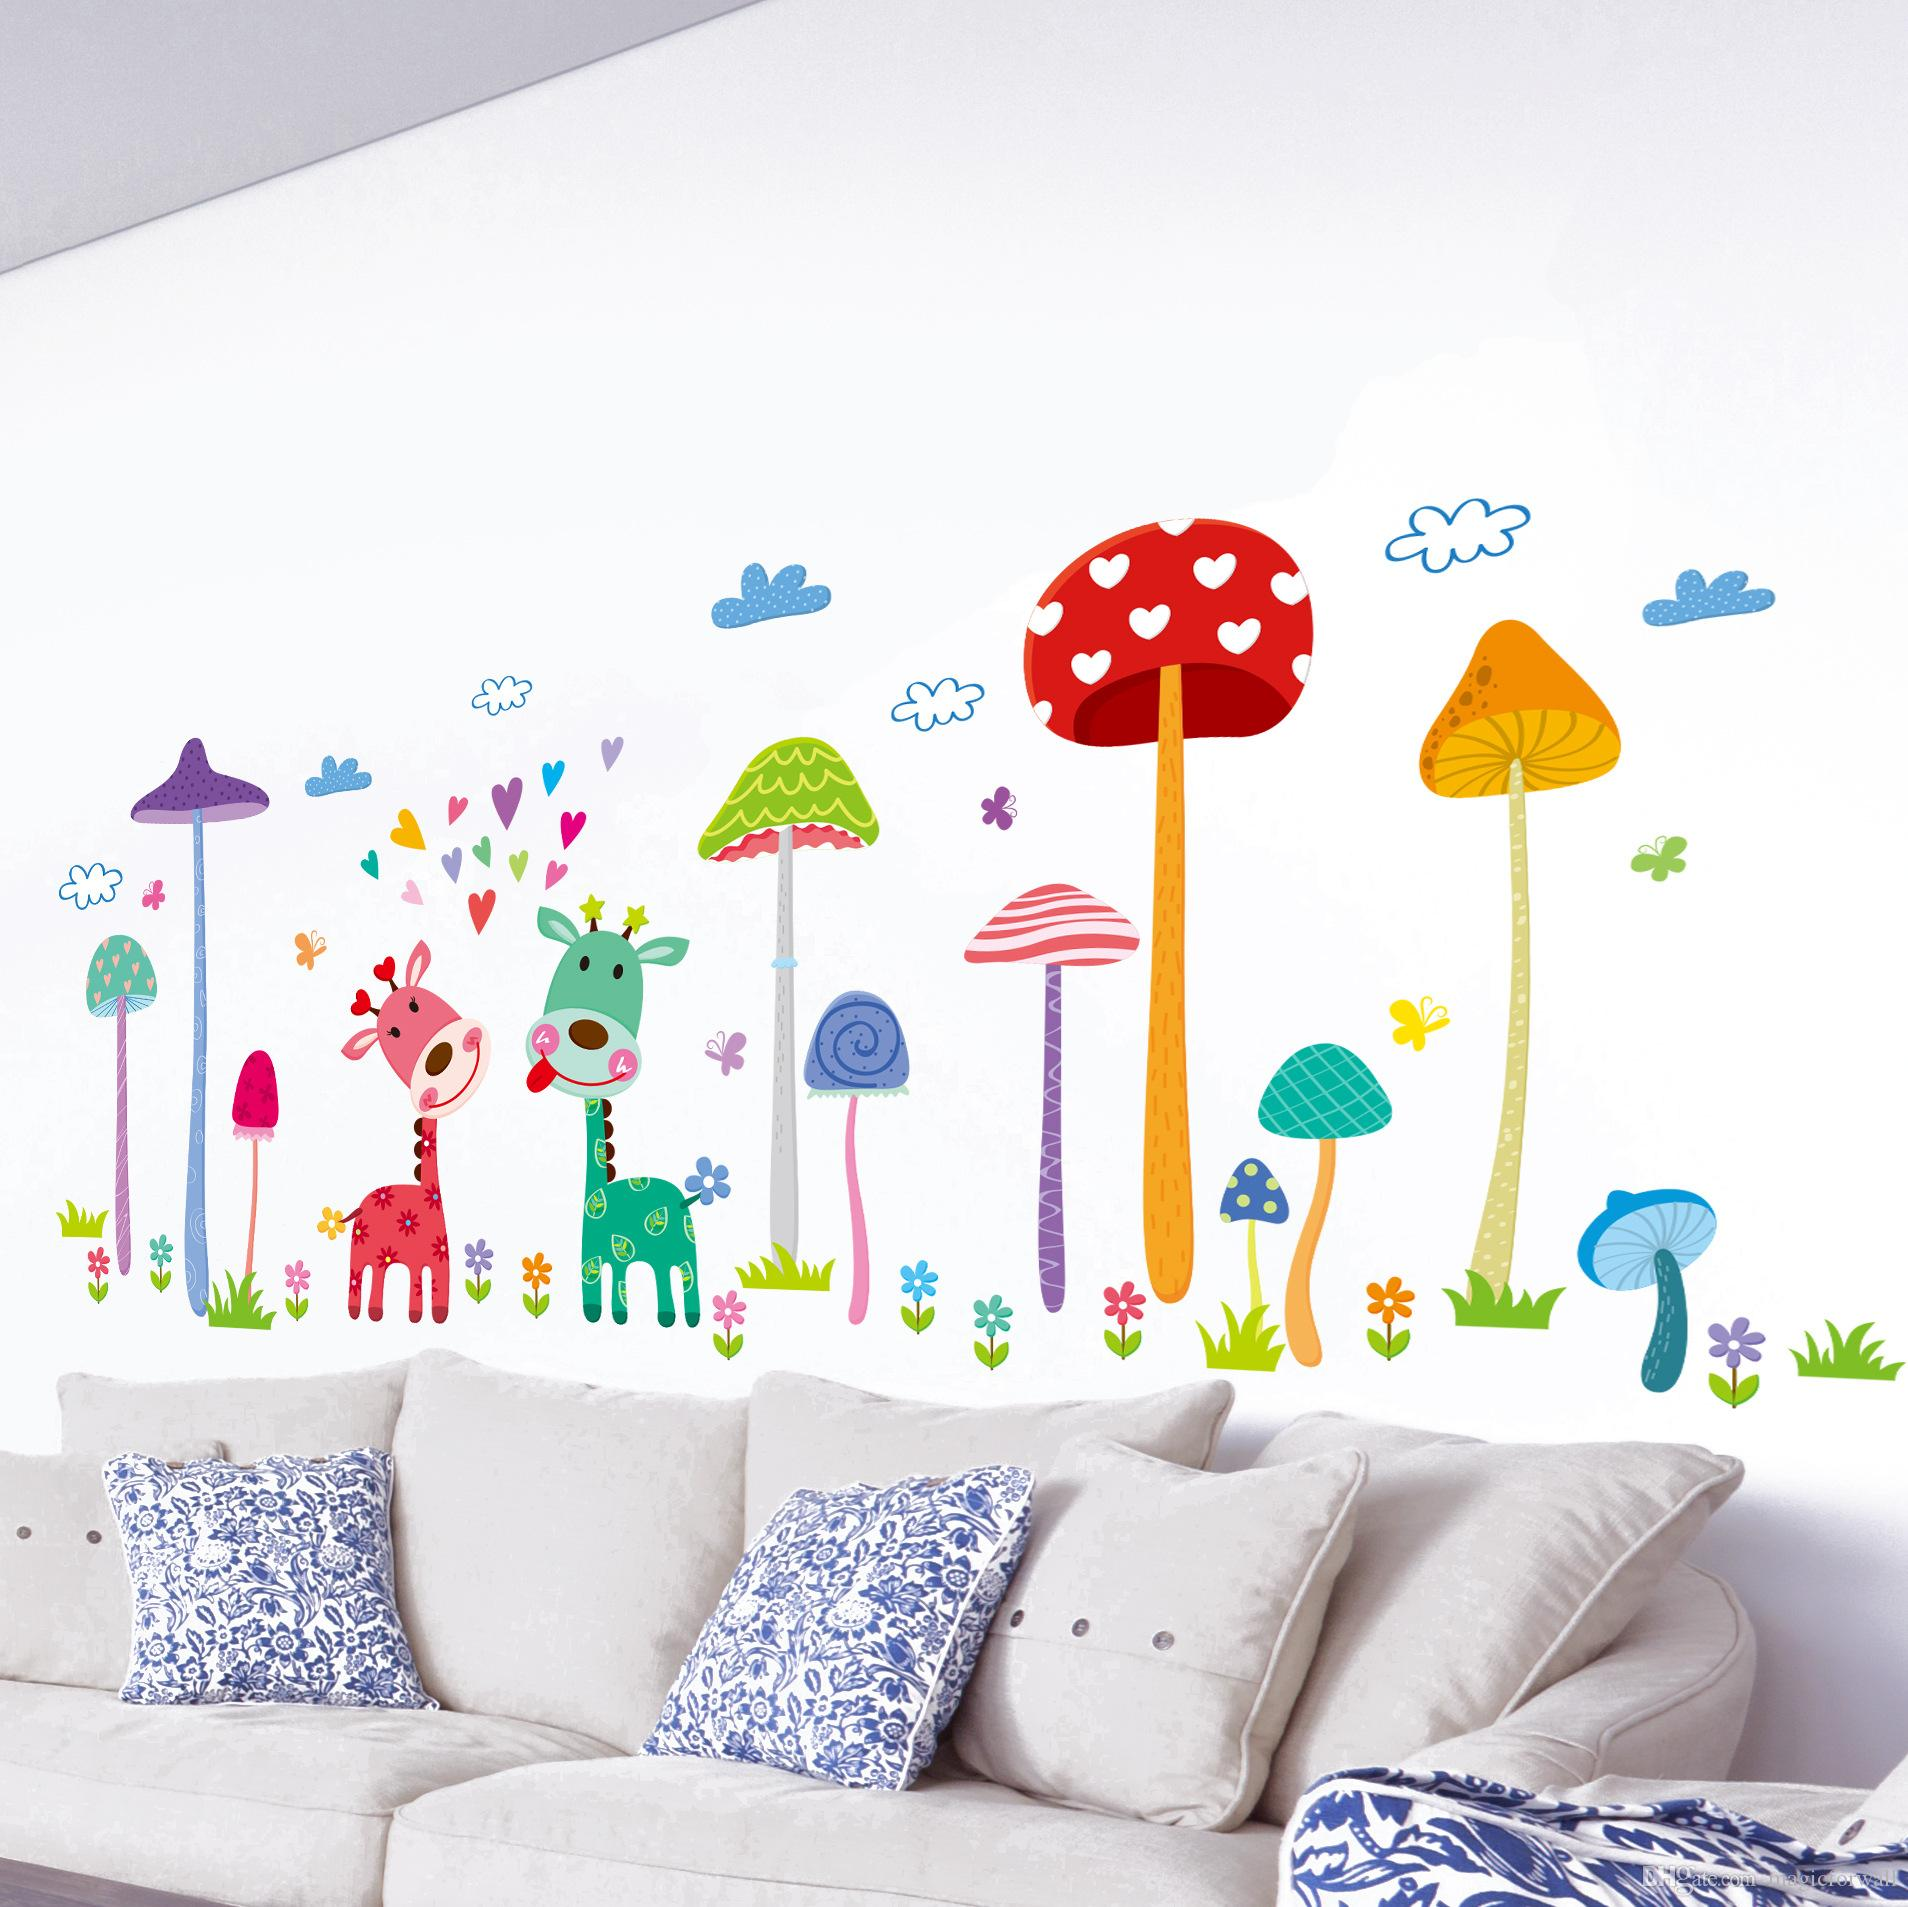 forest mushroom deer animals home wall art mural decor kids babies cheap forest mushroom deer animals art decor best art love wallpaper